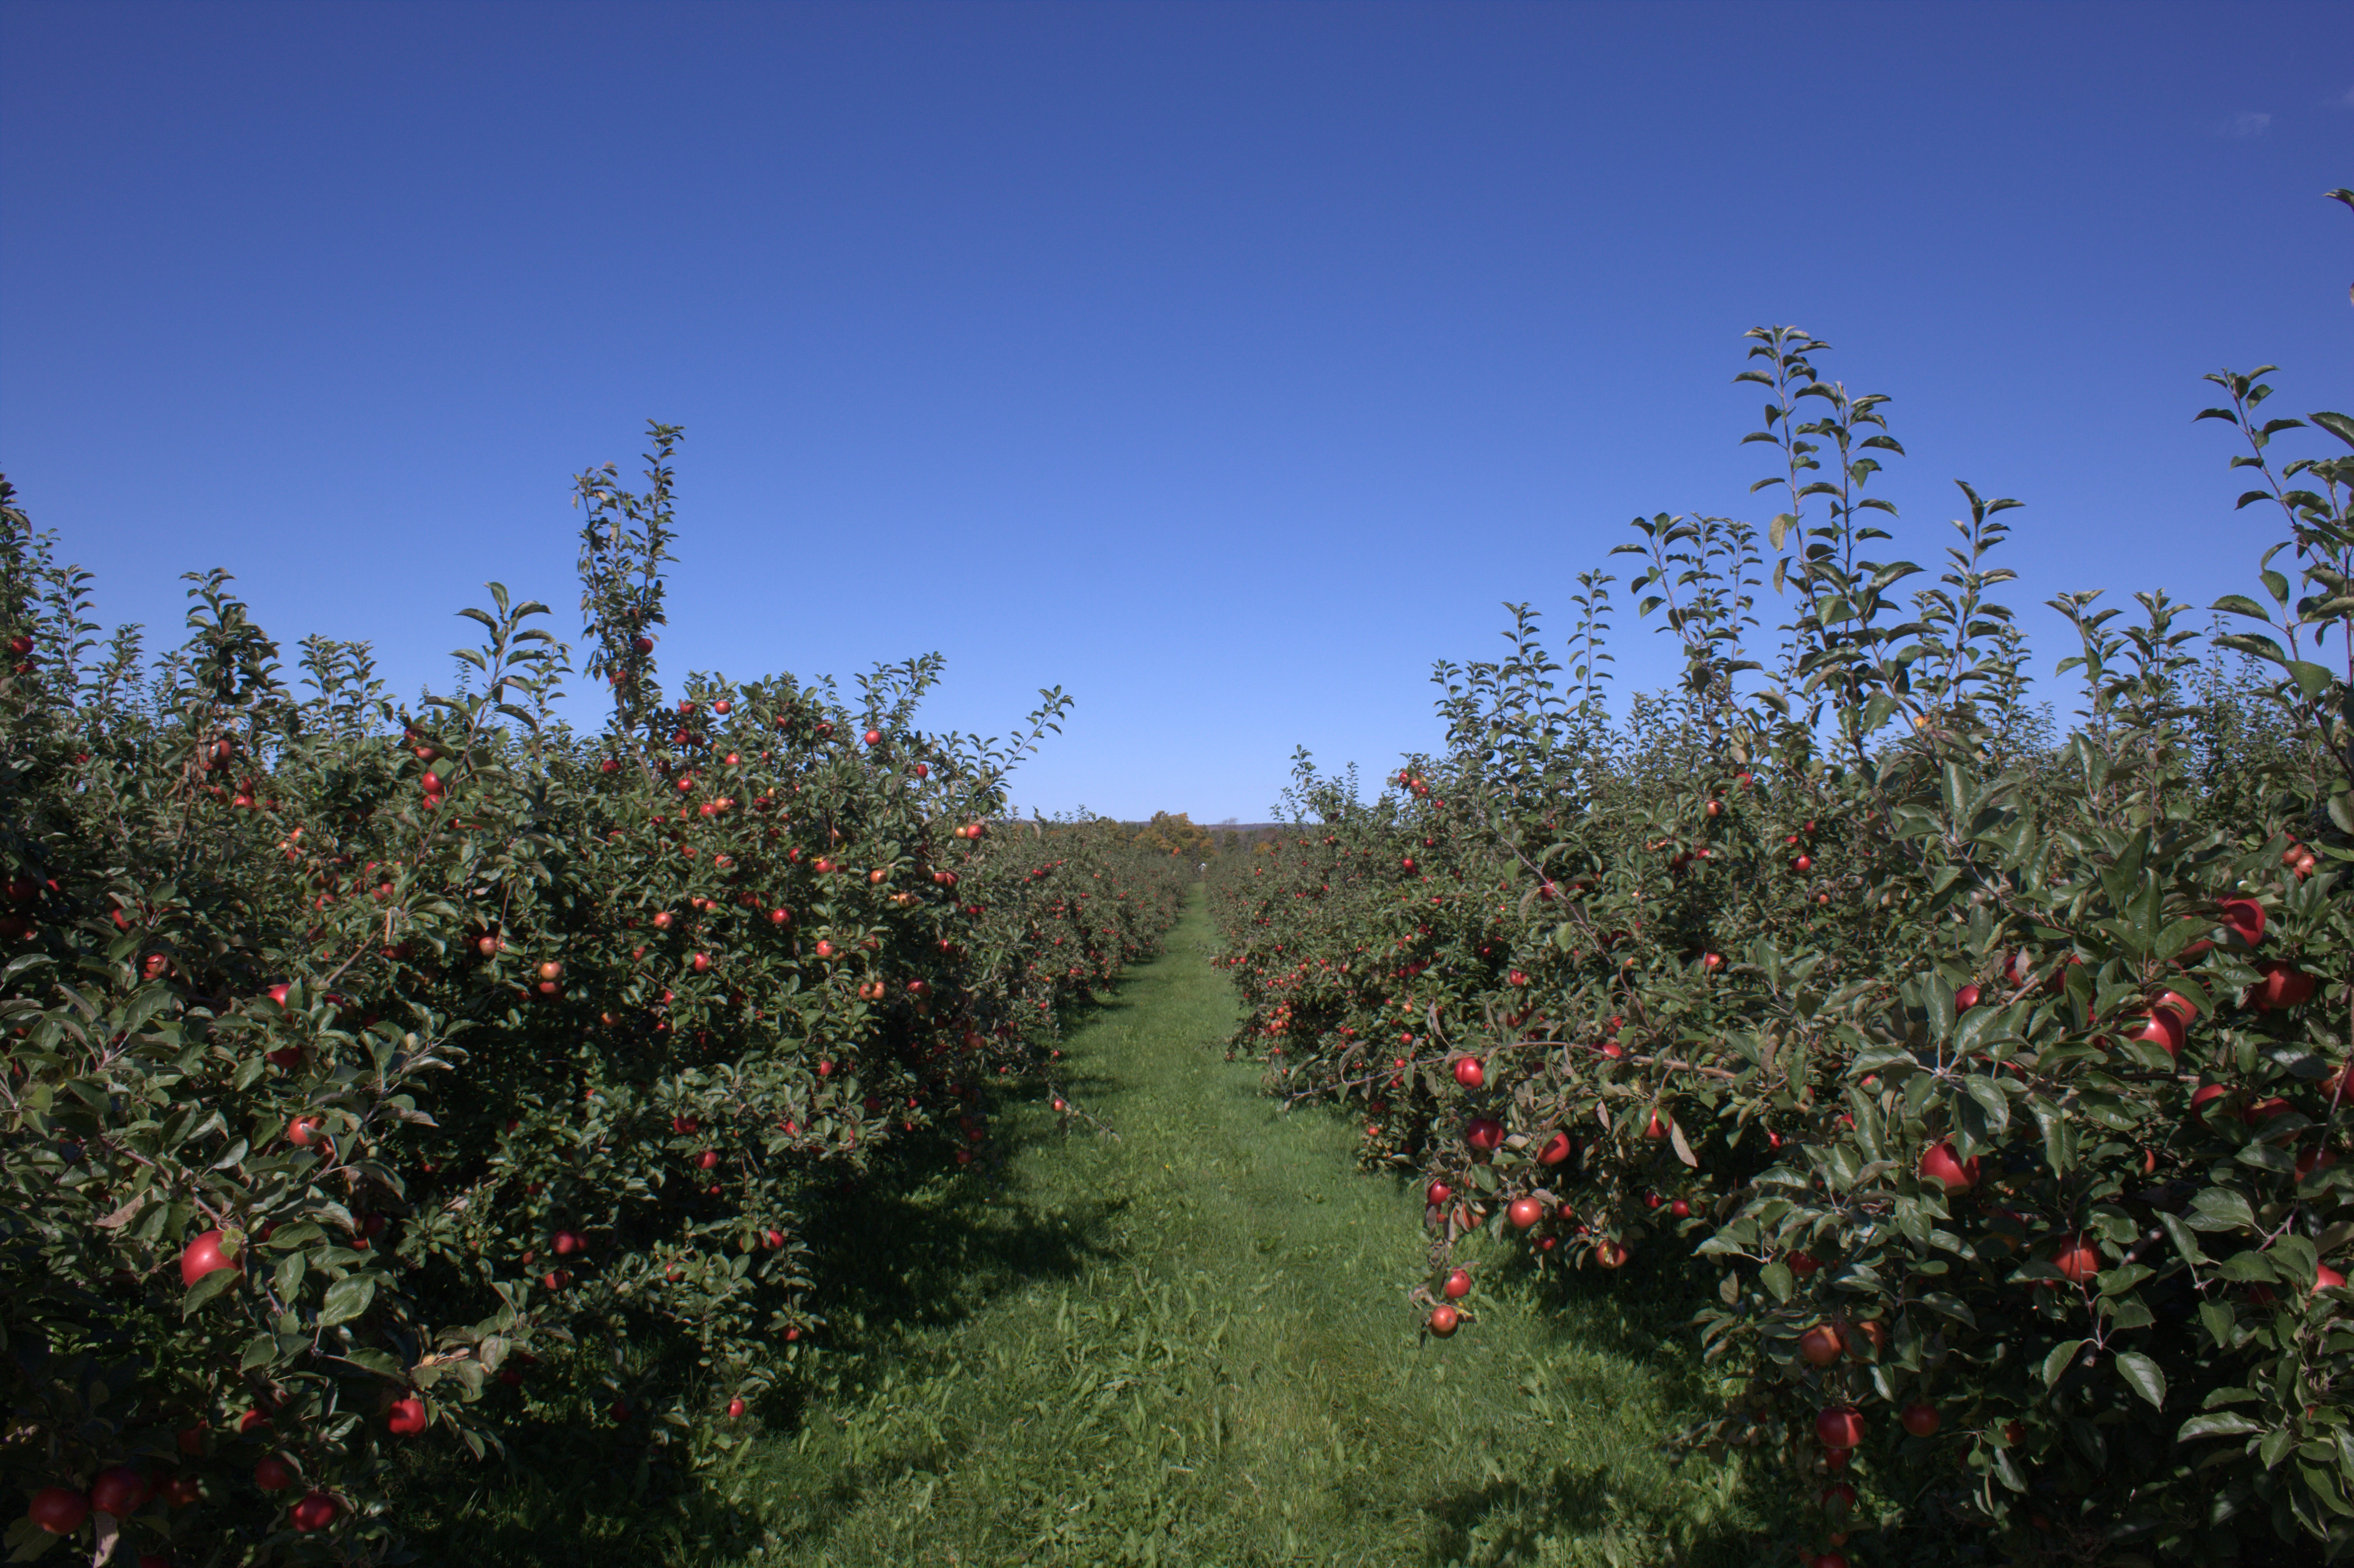 File:Honeycrisp apple orchard.jpg